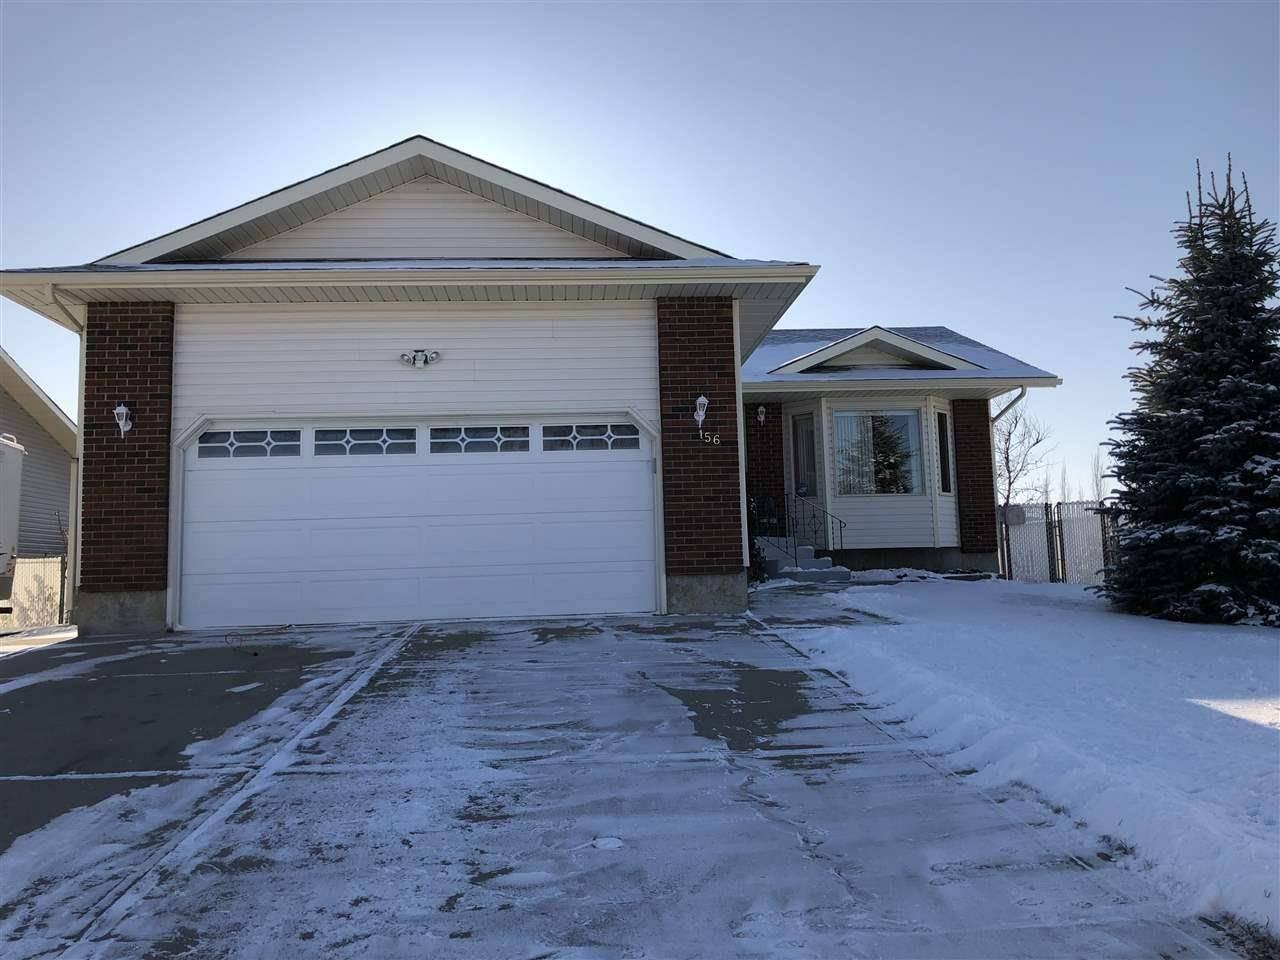 House for sale at 156 Northbend Dr Wetaskiwin Alberta - MLS: E4164098